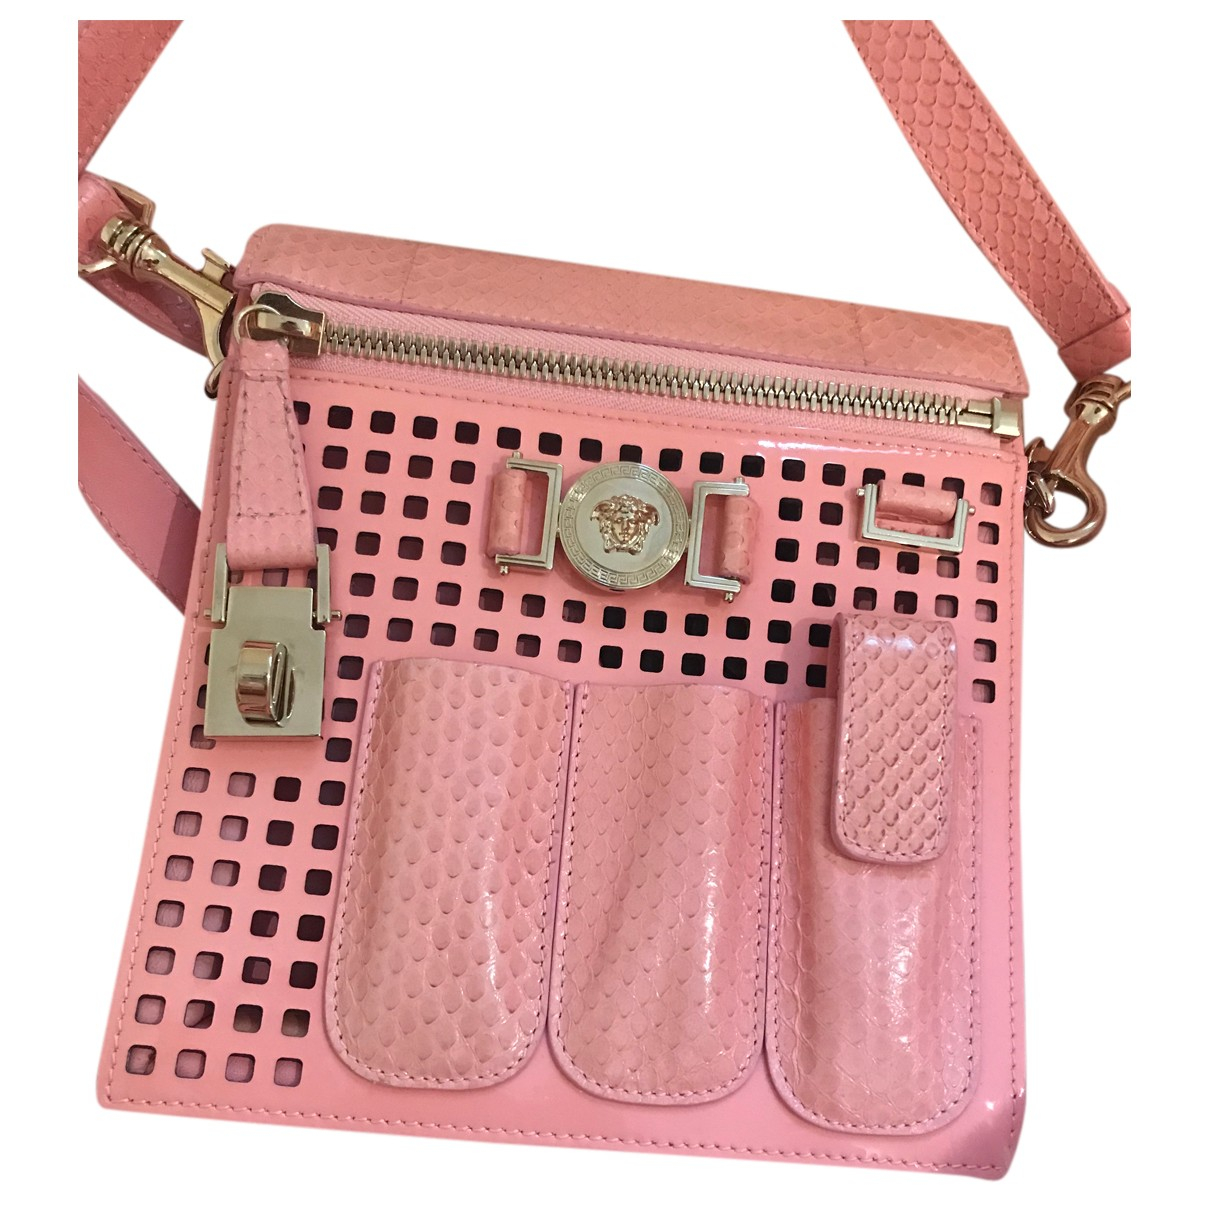 Versace Icon Pink Patent leather handbag for Women N